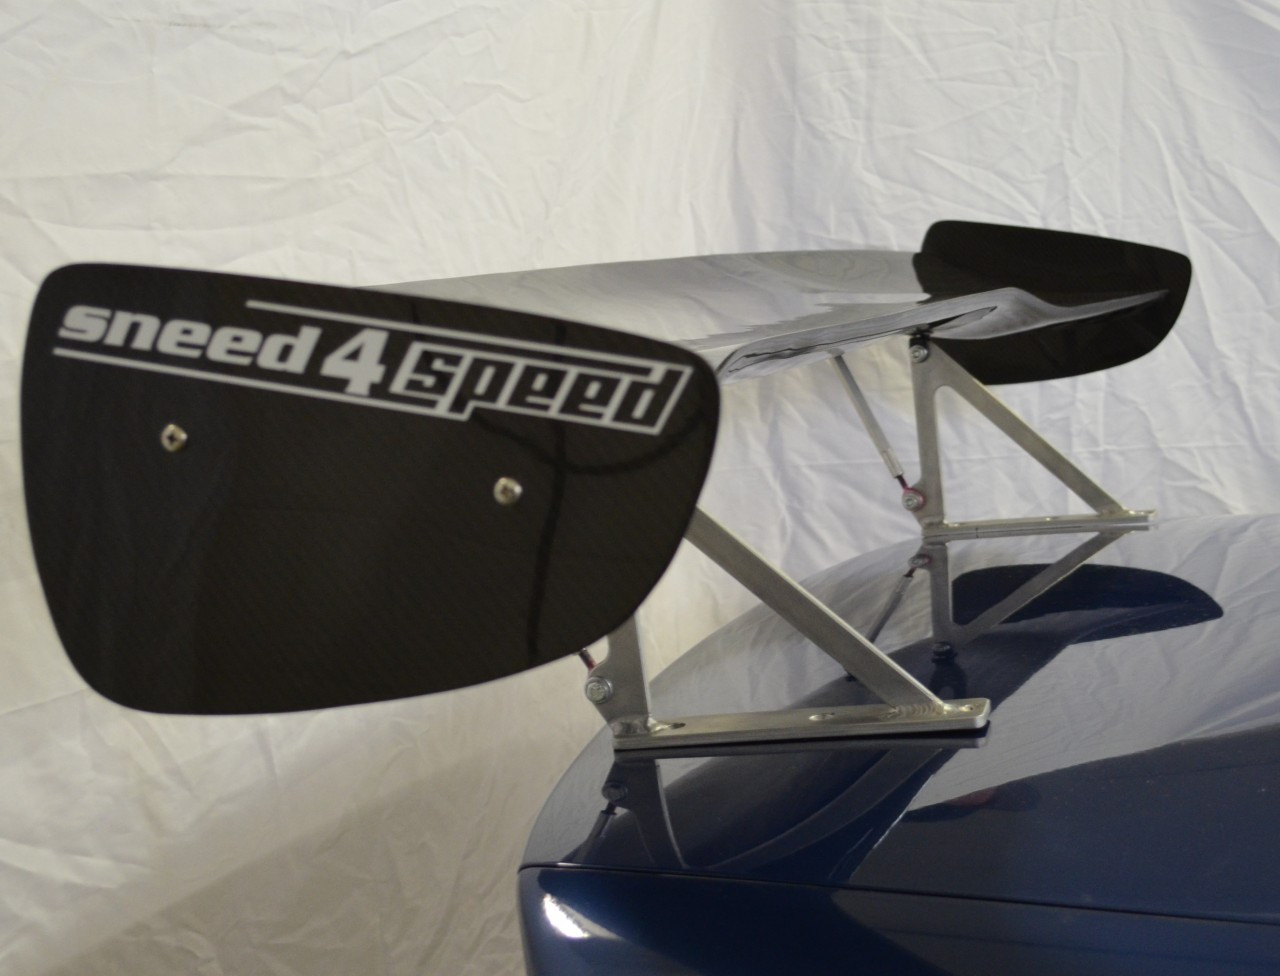 BMW e46 323i sneed4speed carbon race wing